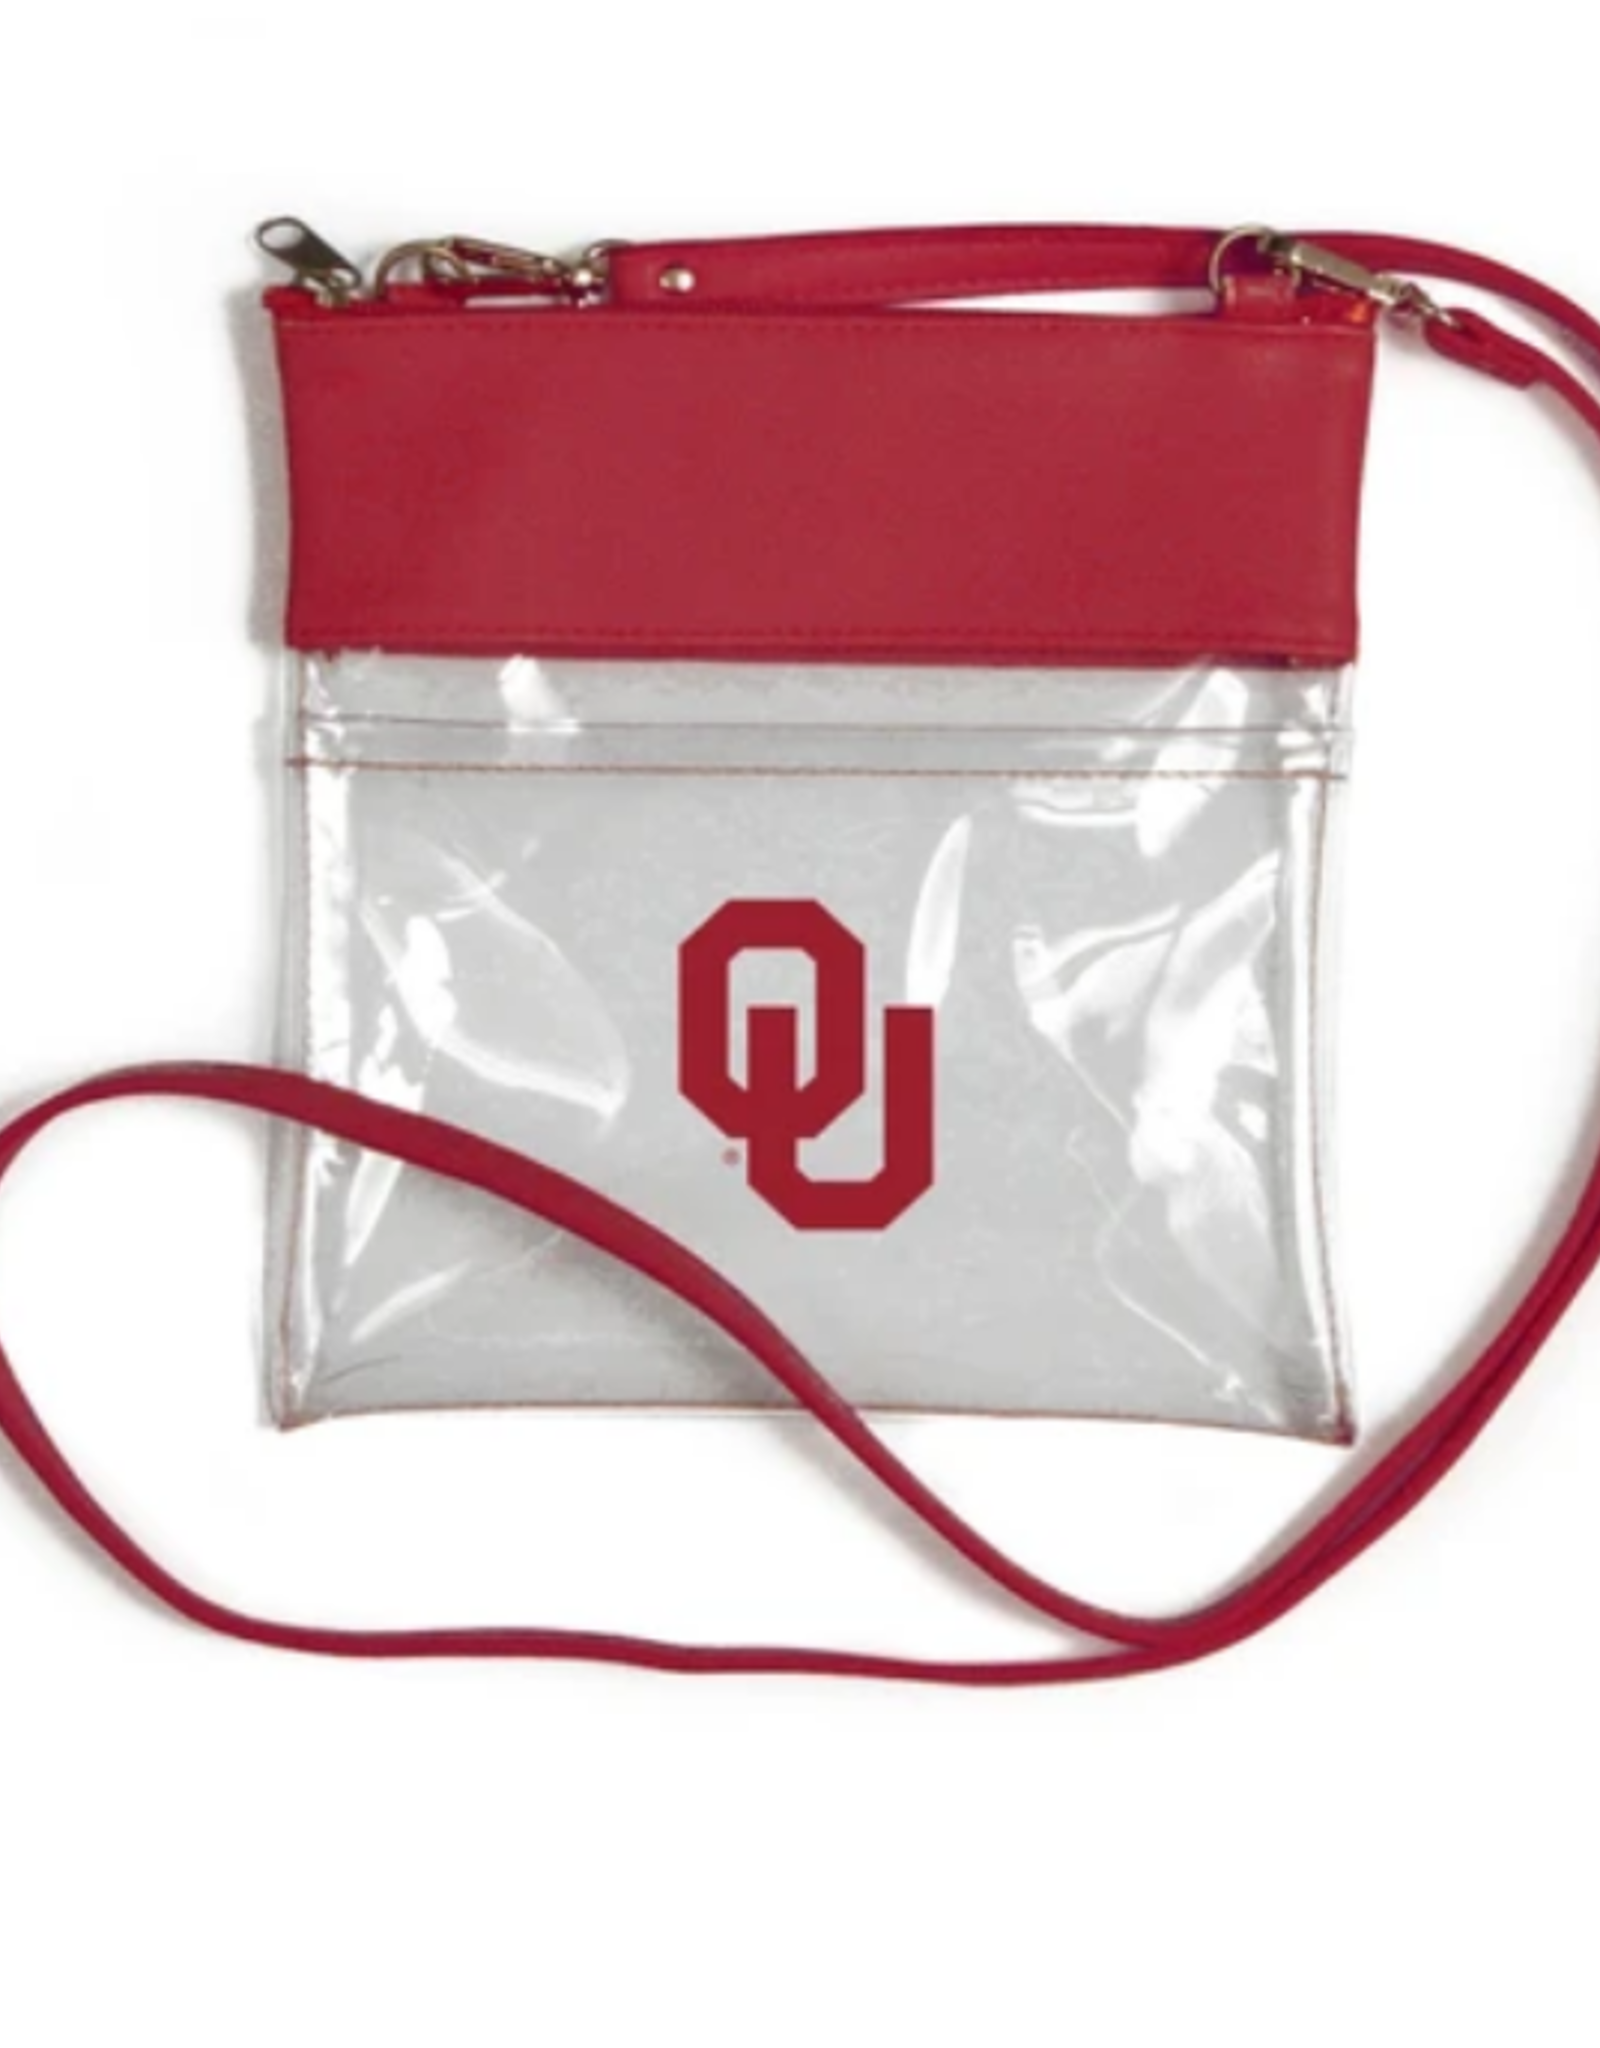 Desden Desden OU Clear Gameday Crossbody